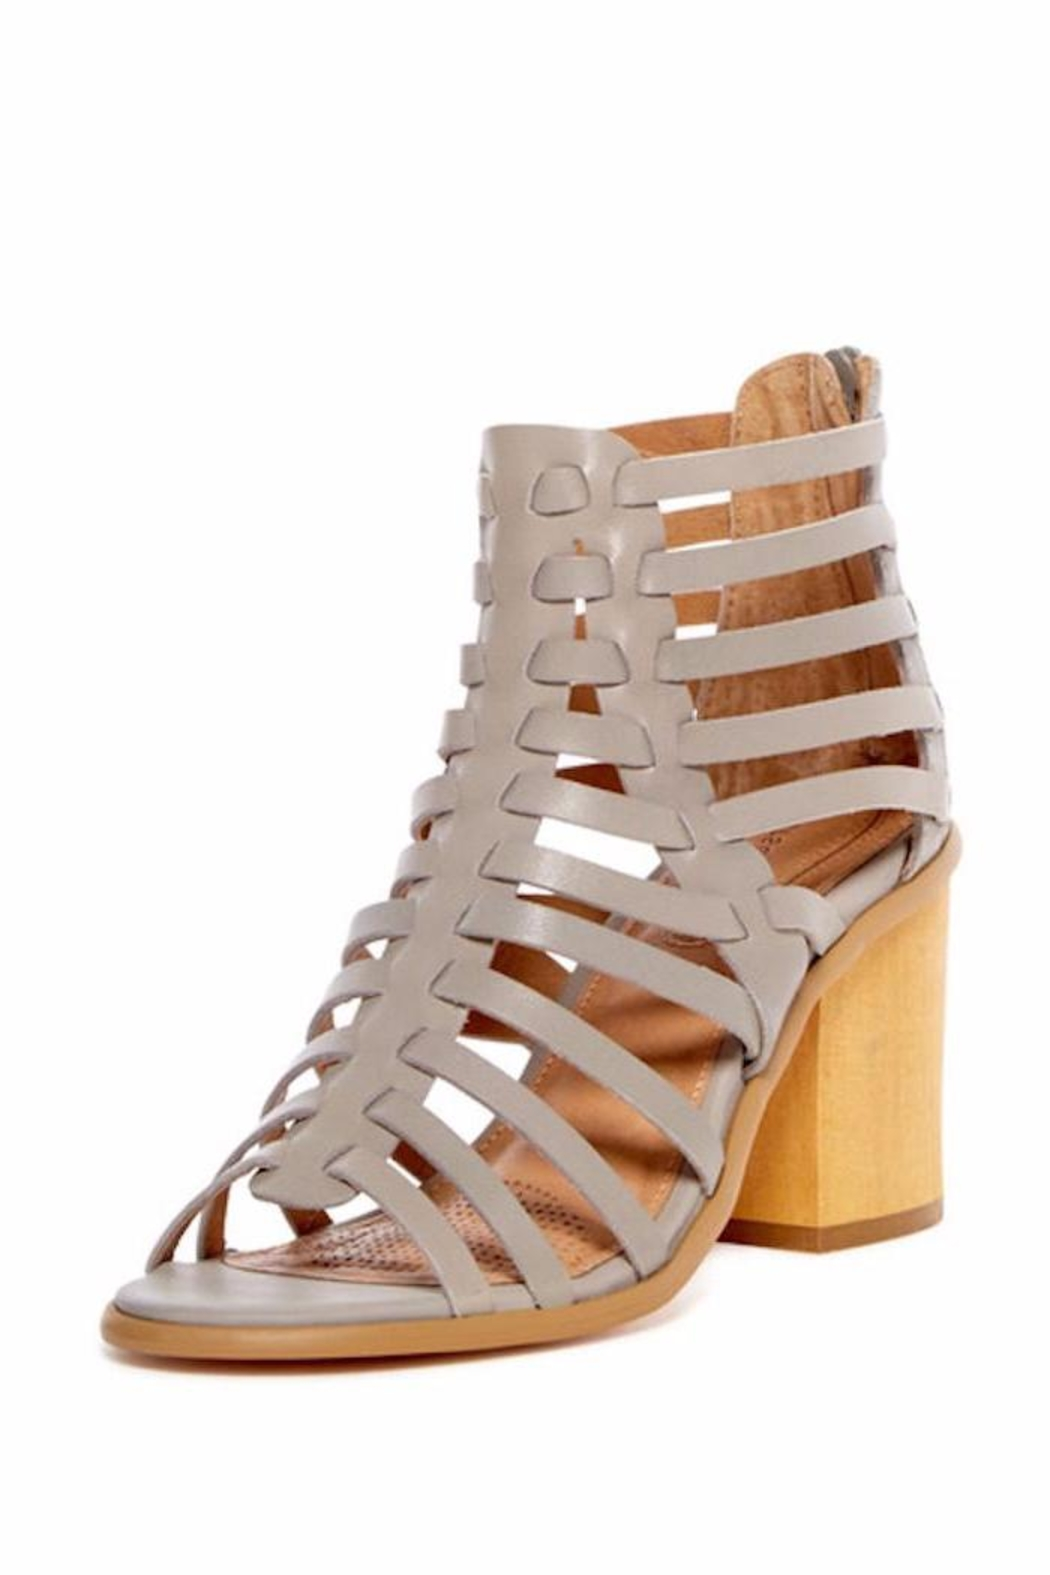 Corso Como Shoes Skye Cage Sandals - Main Image